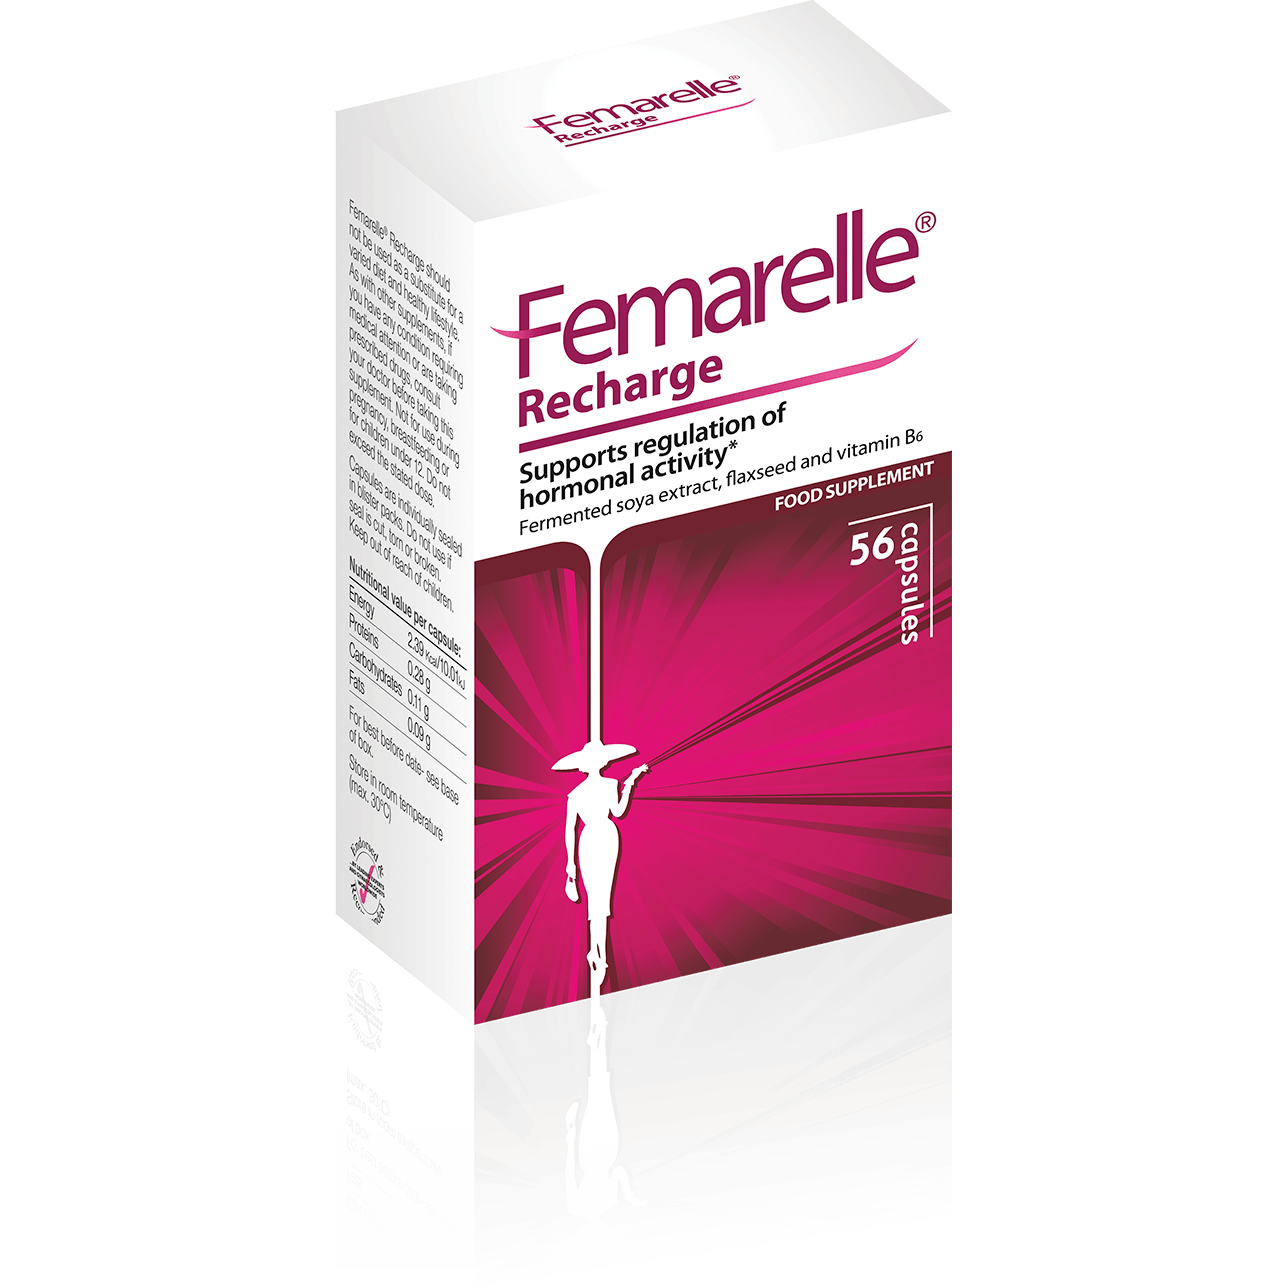 box femarlle Recharge big (1)@1x